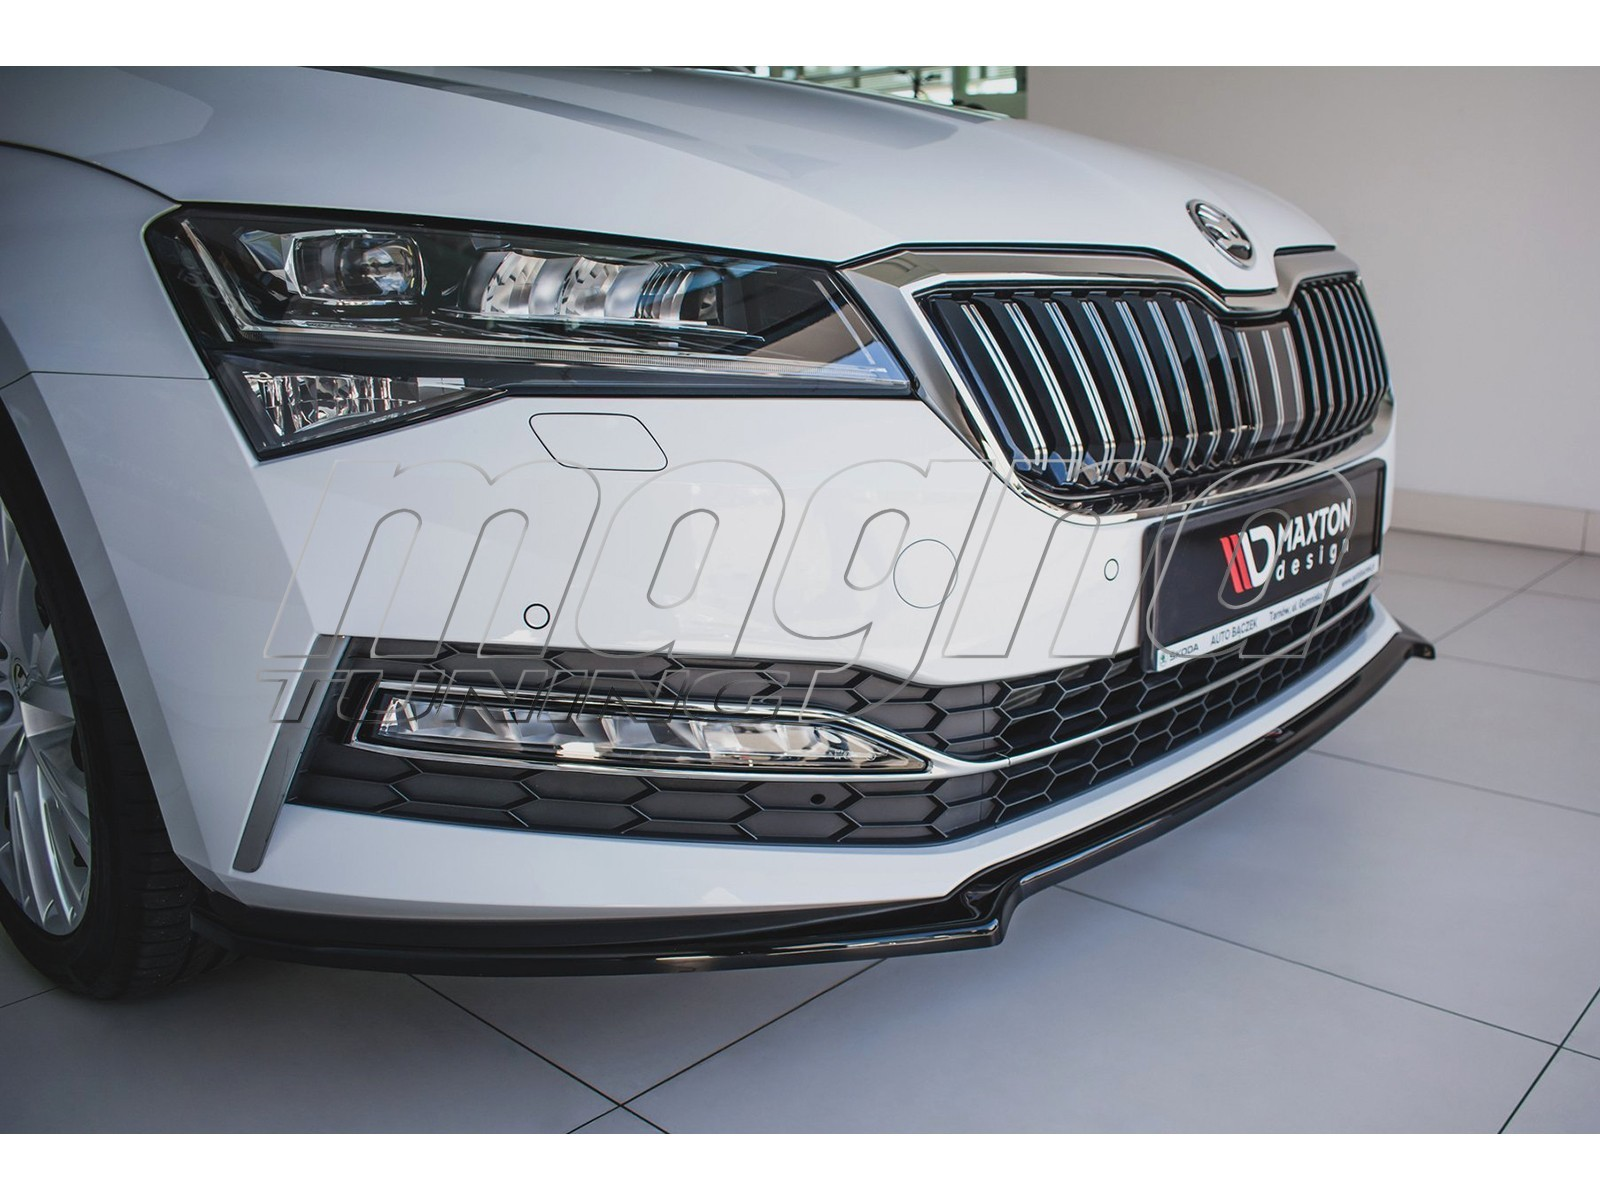 Skoda Superb B8 3V Matrix Body Kit